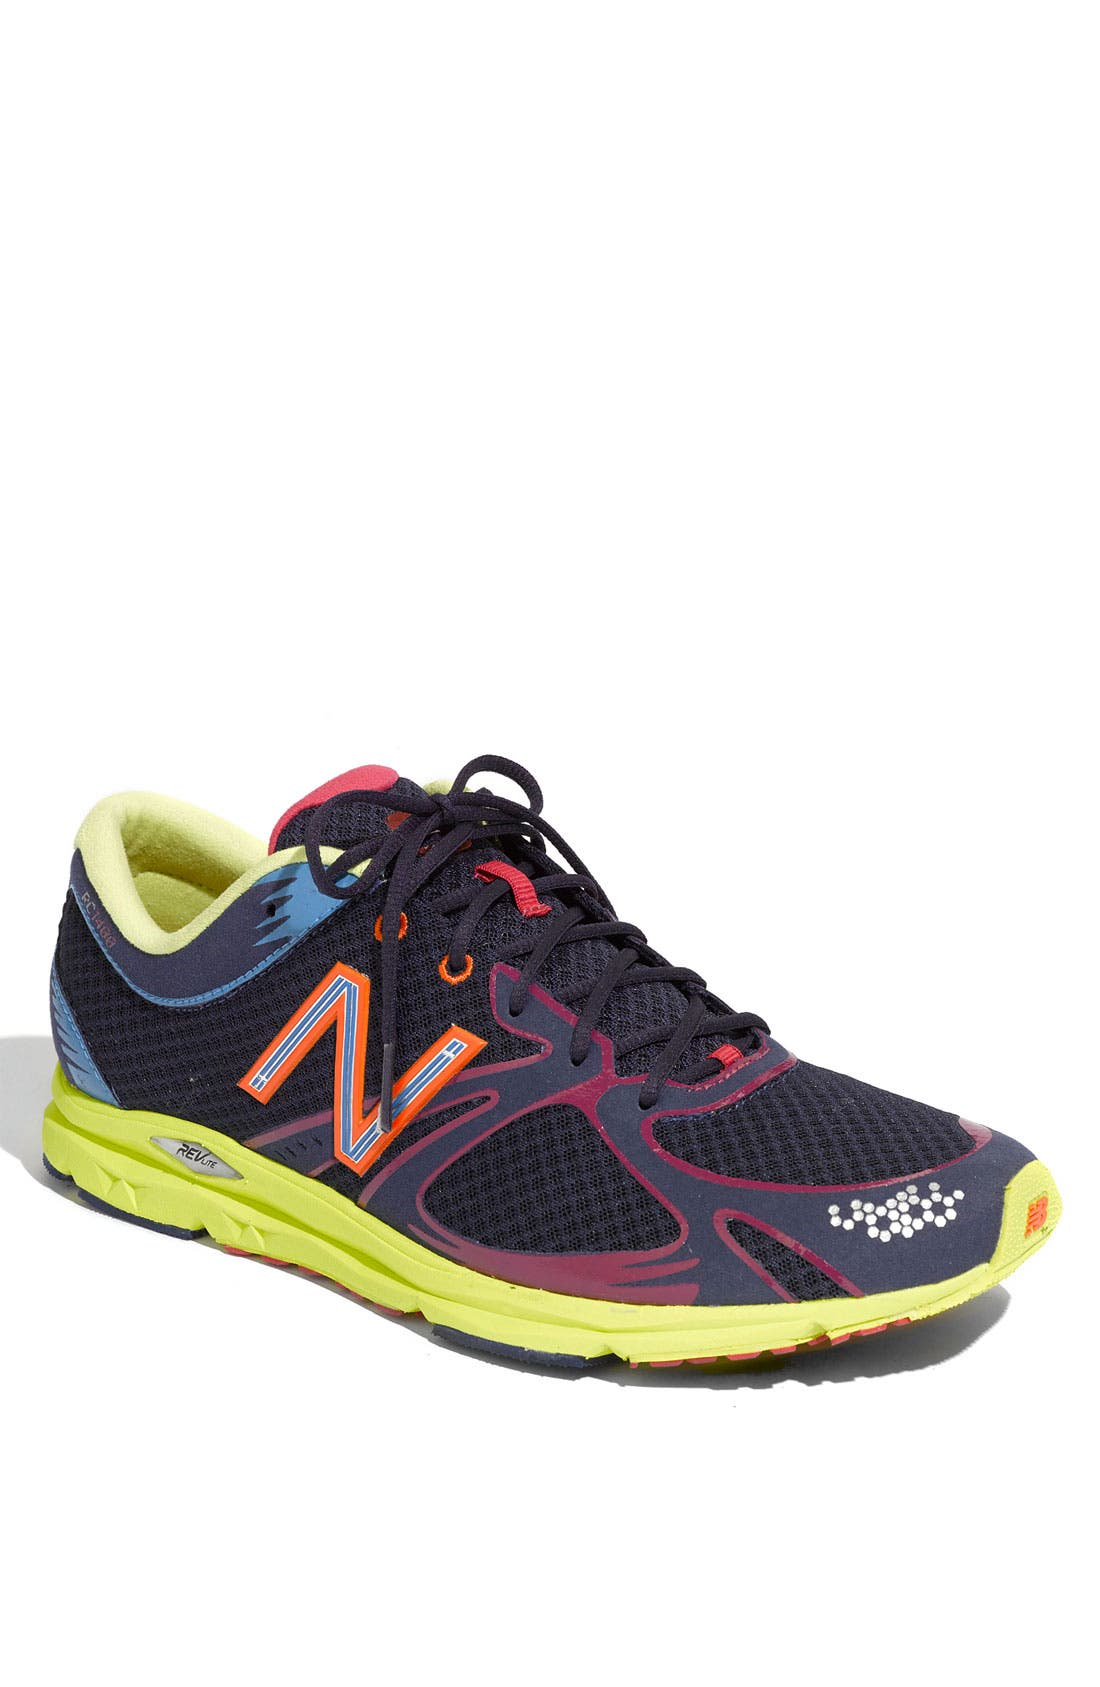 Alternate Image 1 Selected - New Balance '1400' Running Shoe (Men)